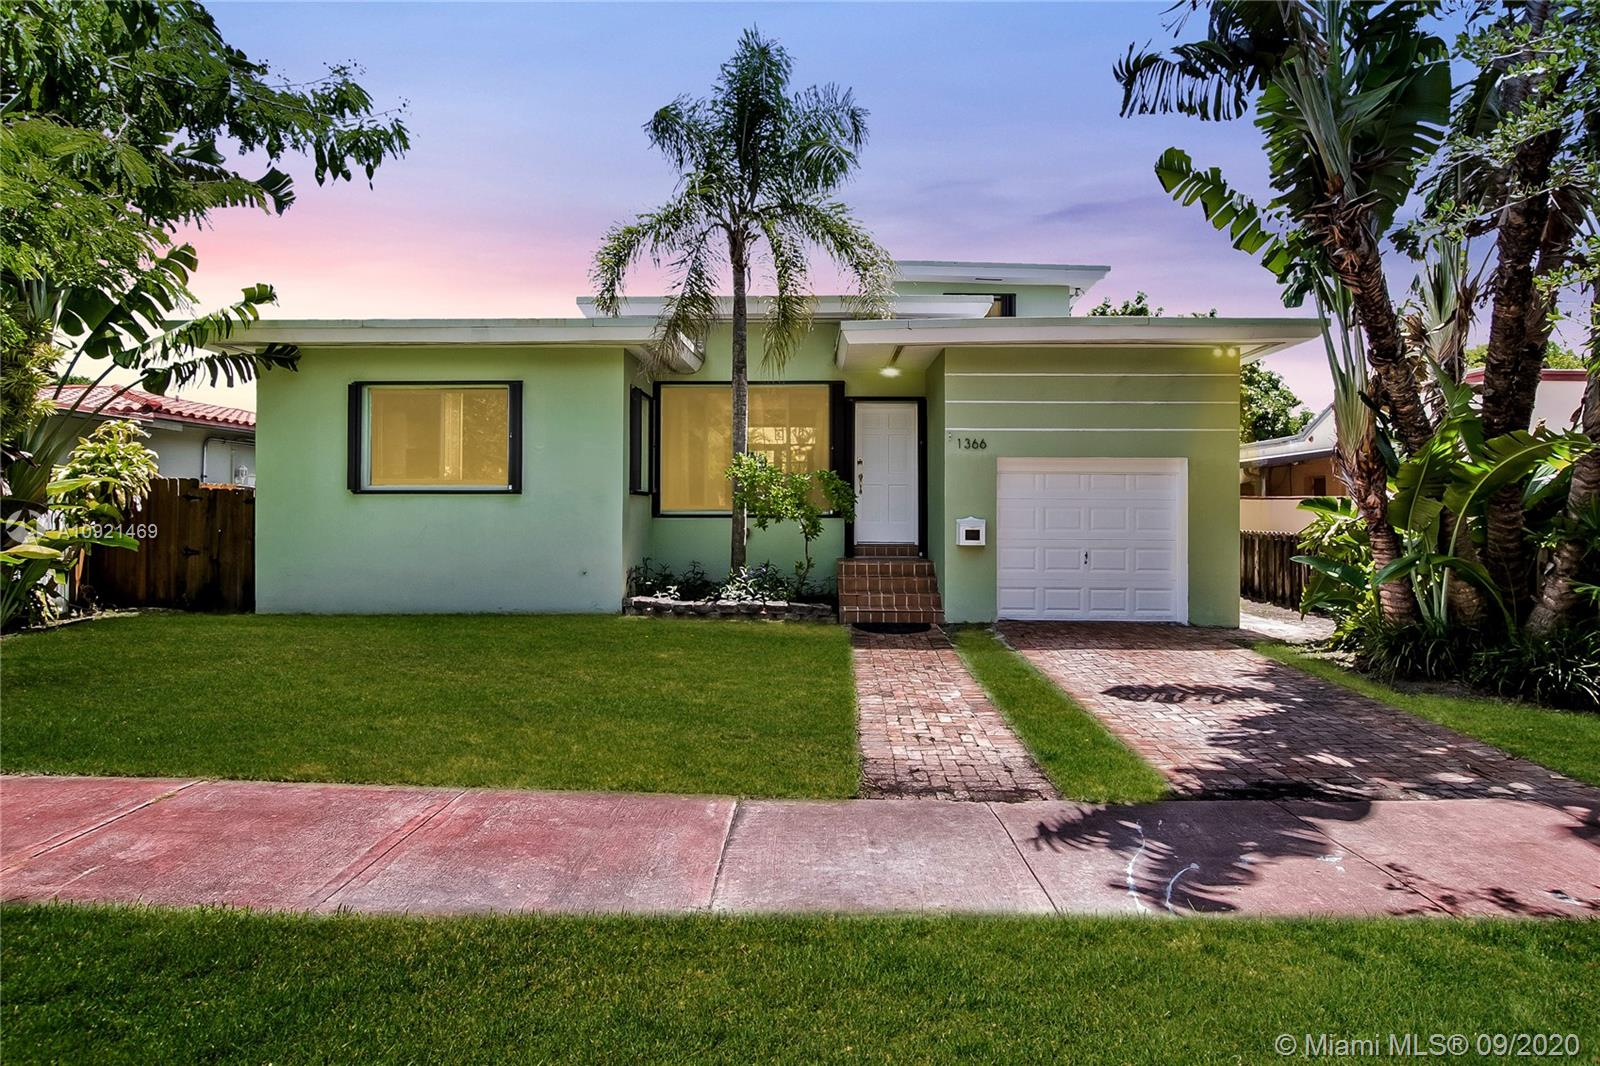 1366  Biarritz Dr  For Sale A10921469, FL